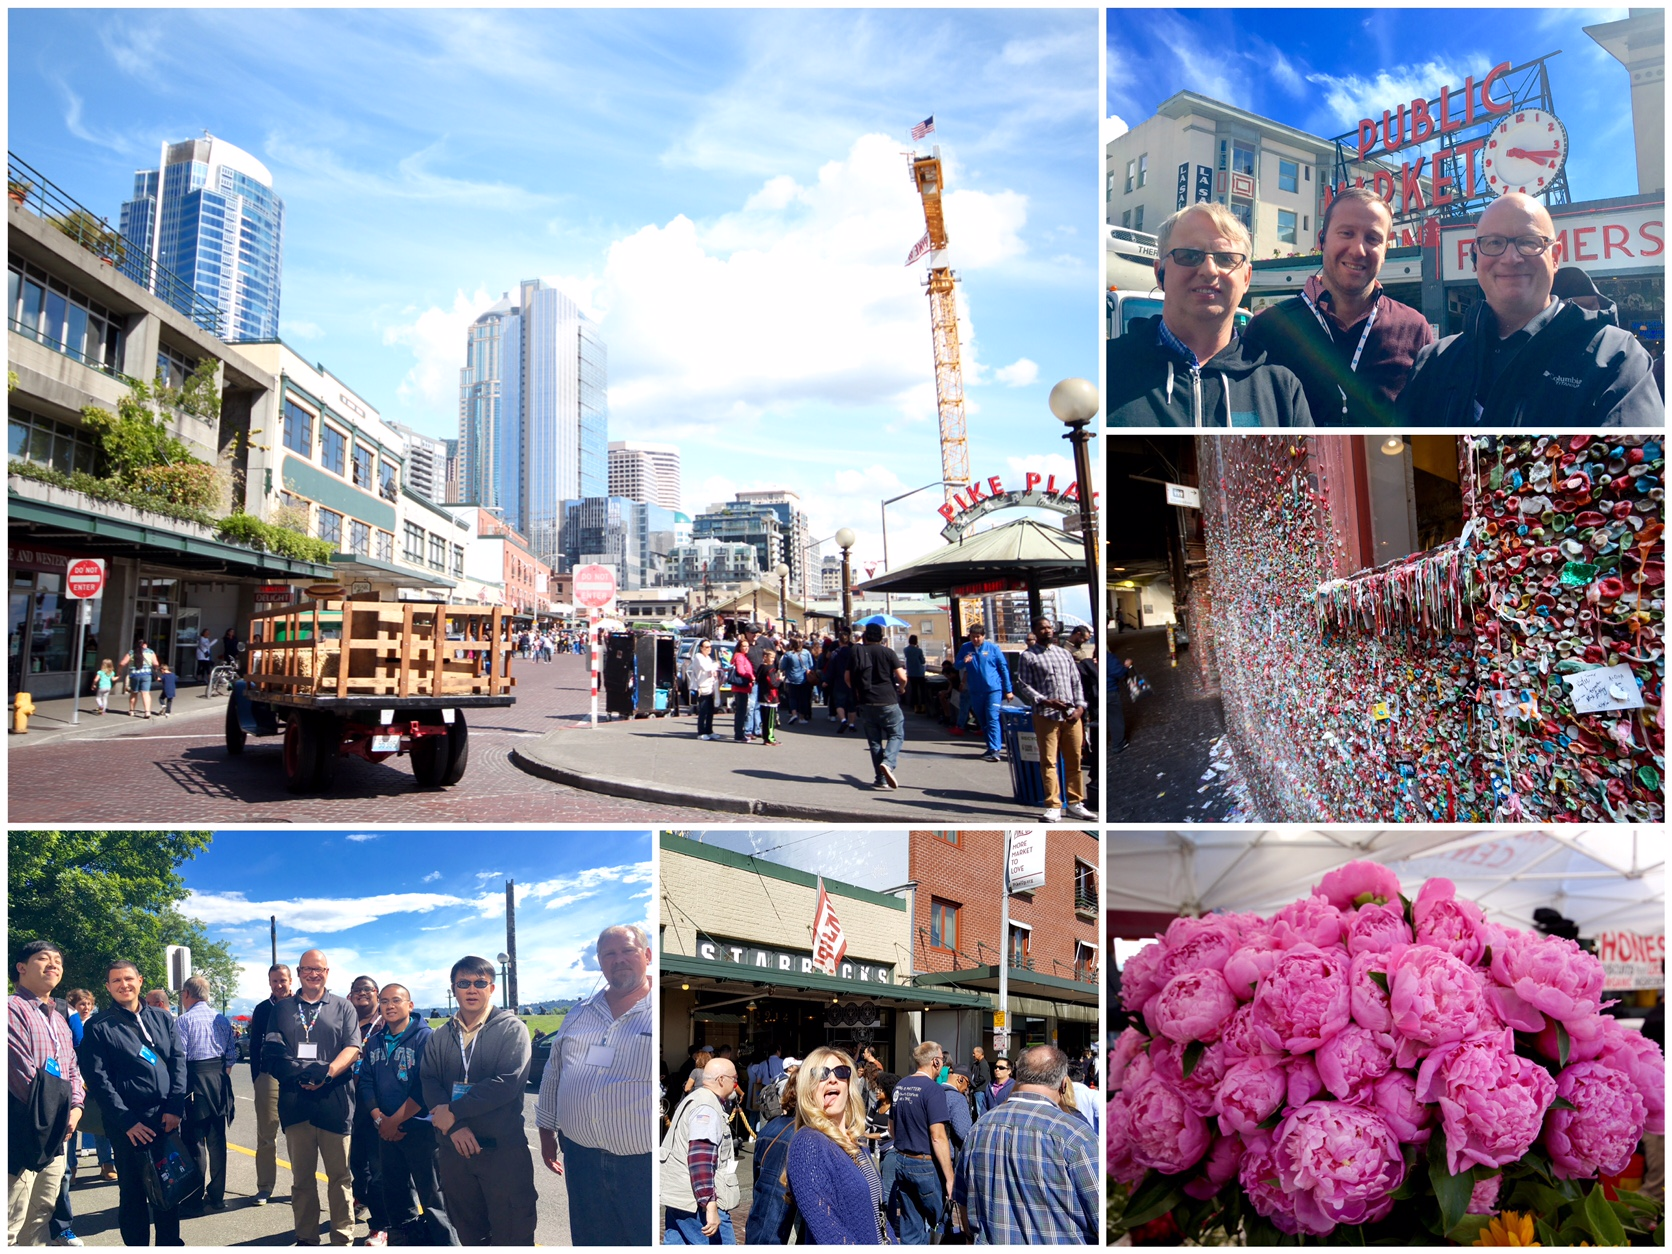 pike place collage.jpg